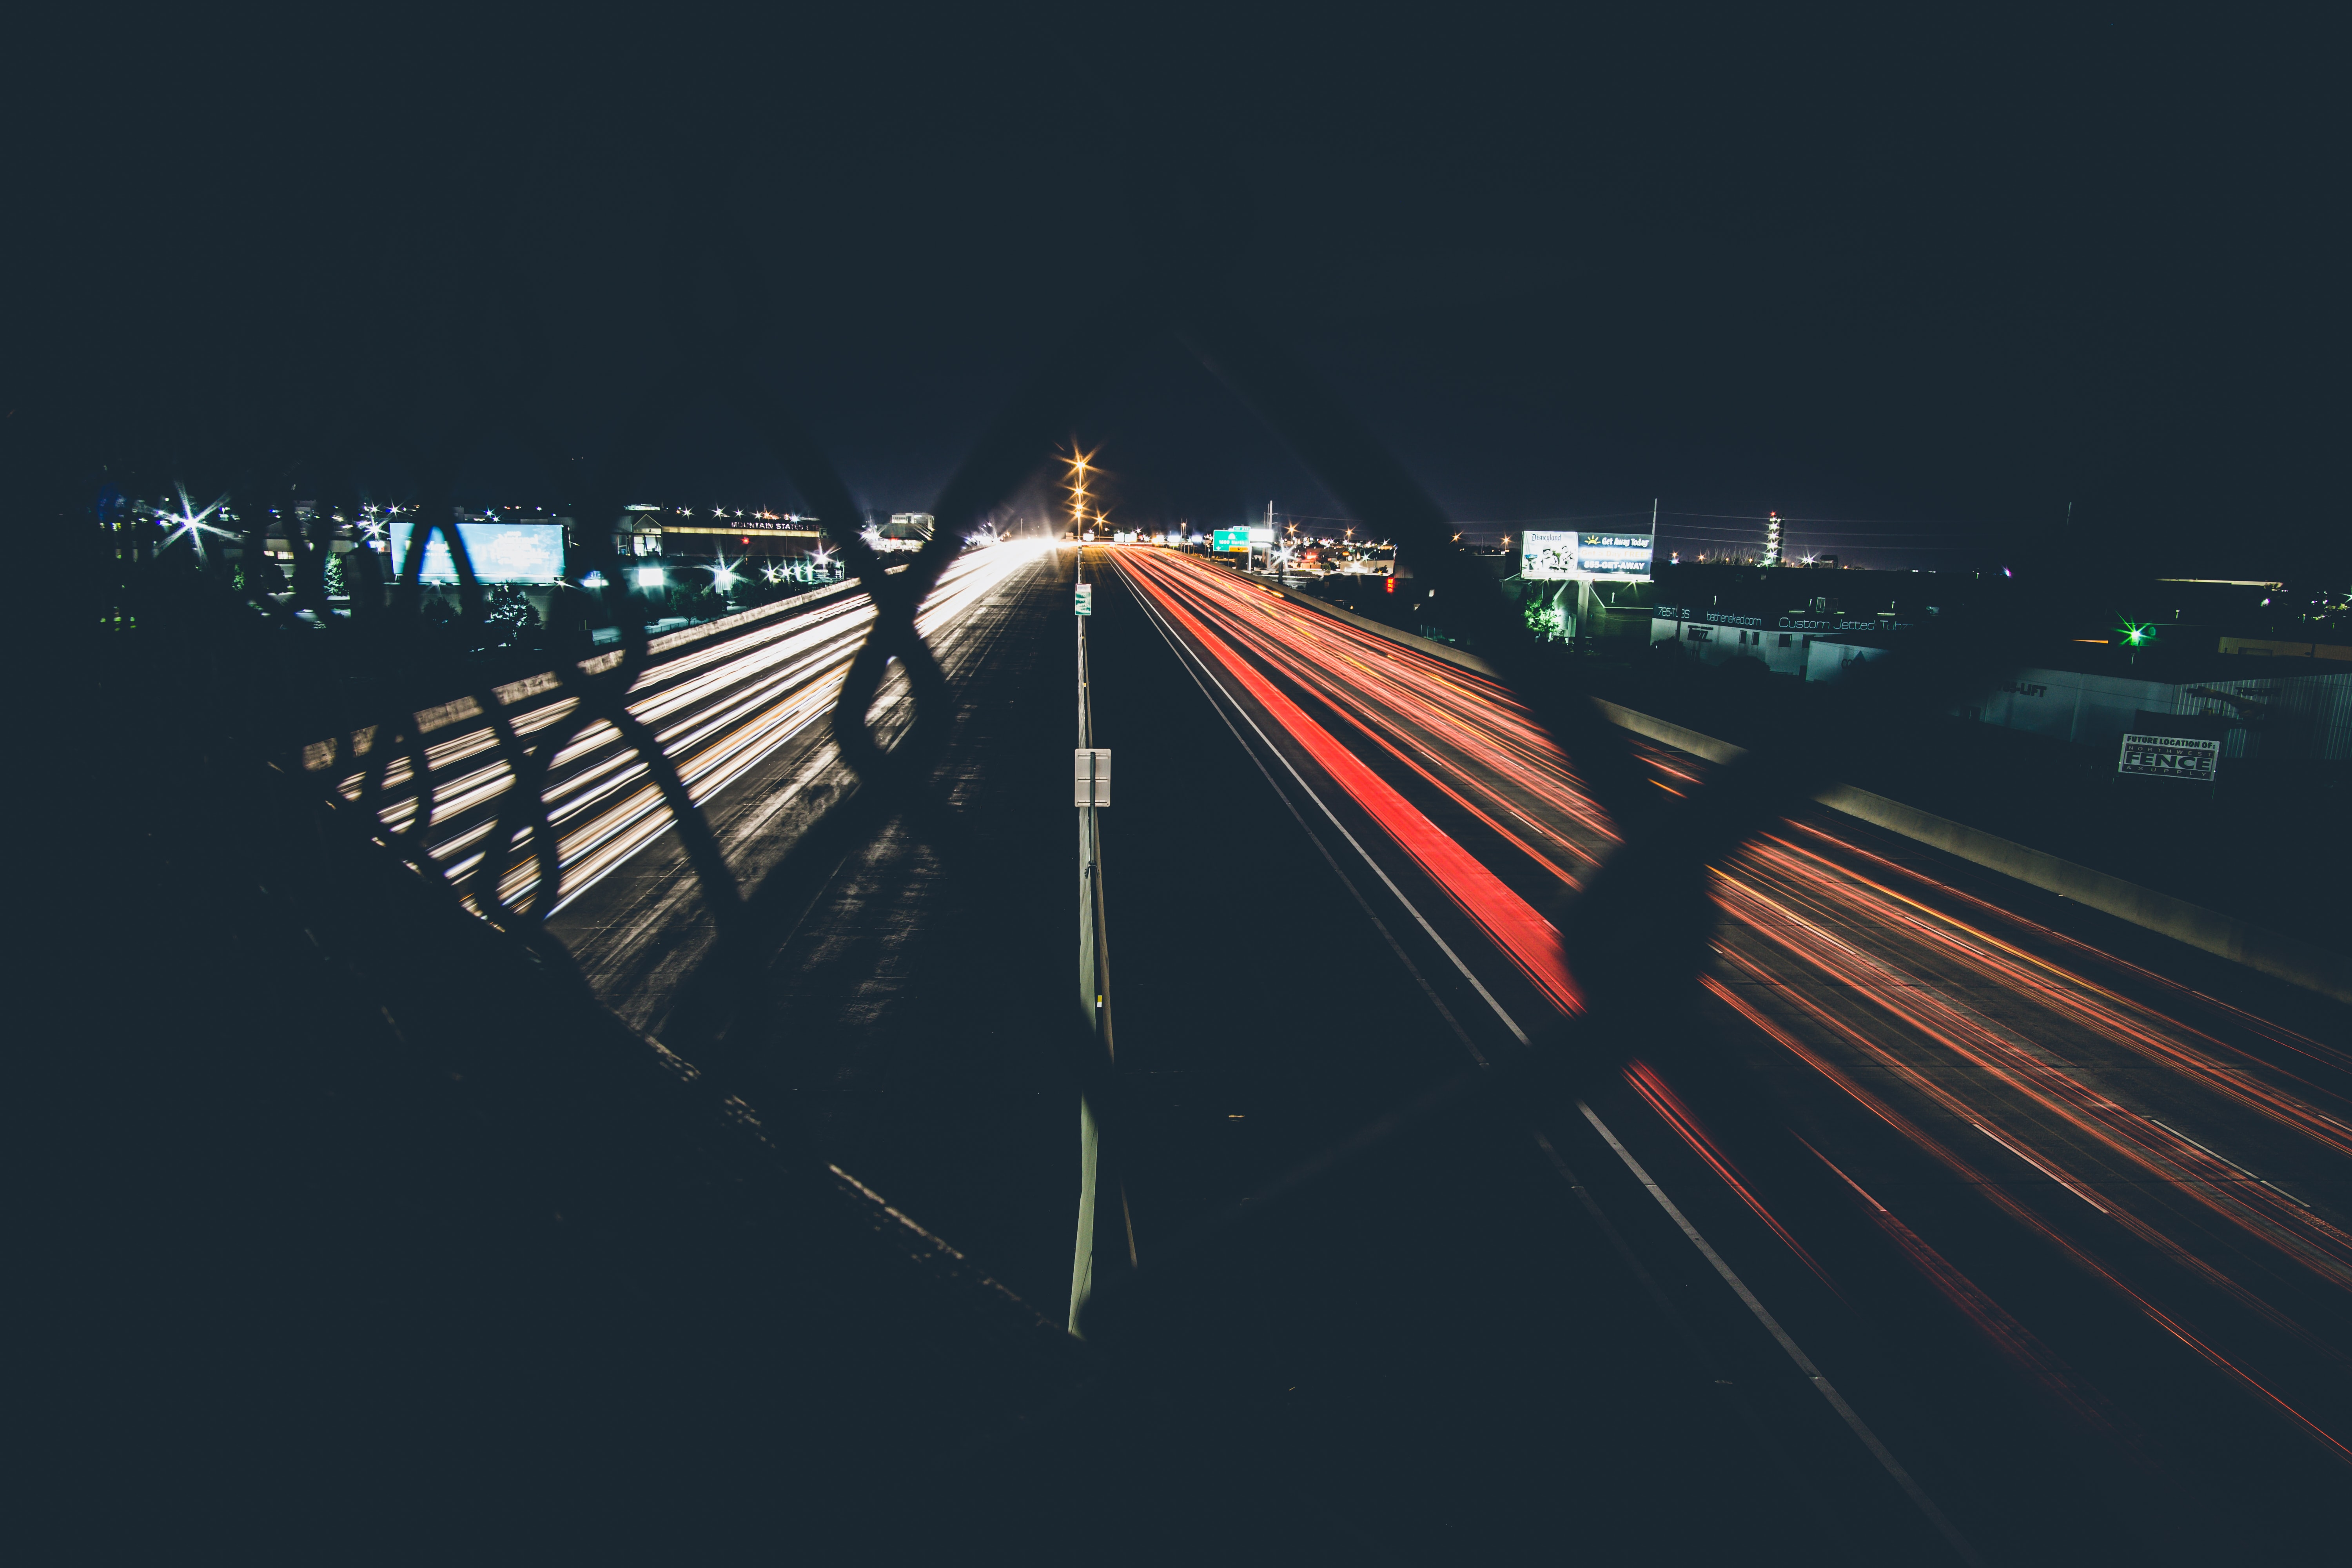 A night-time shot of car trails on a dual highway from behind a fence